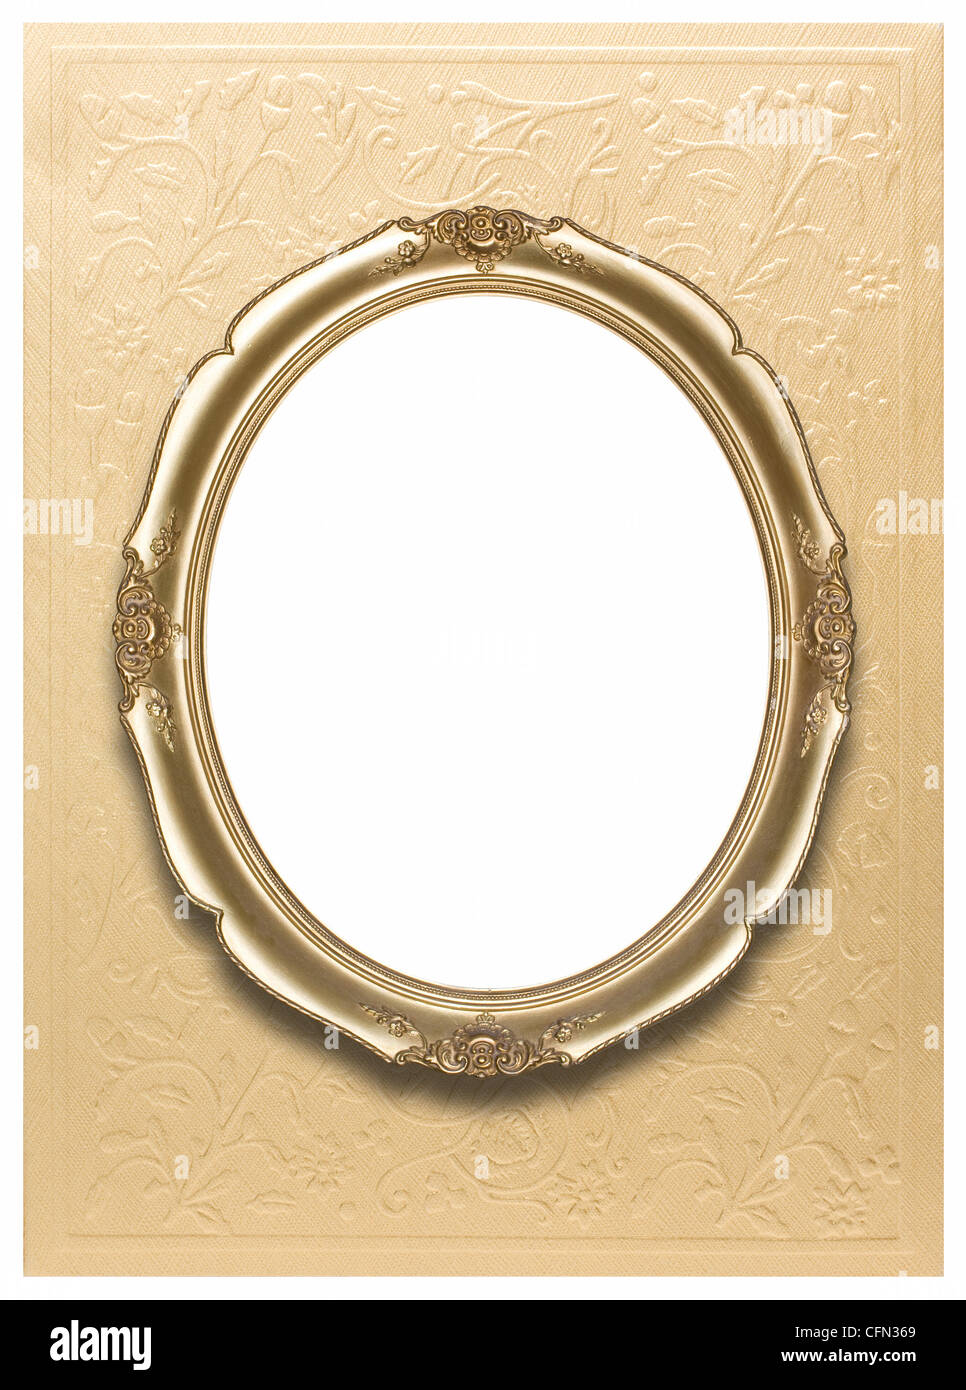 Oval Frame Antique Stock Photos & Oval Frame Antique Stock Images ...